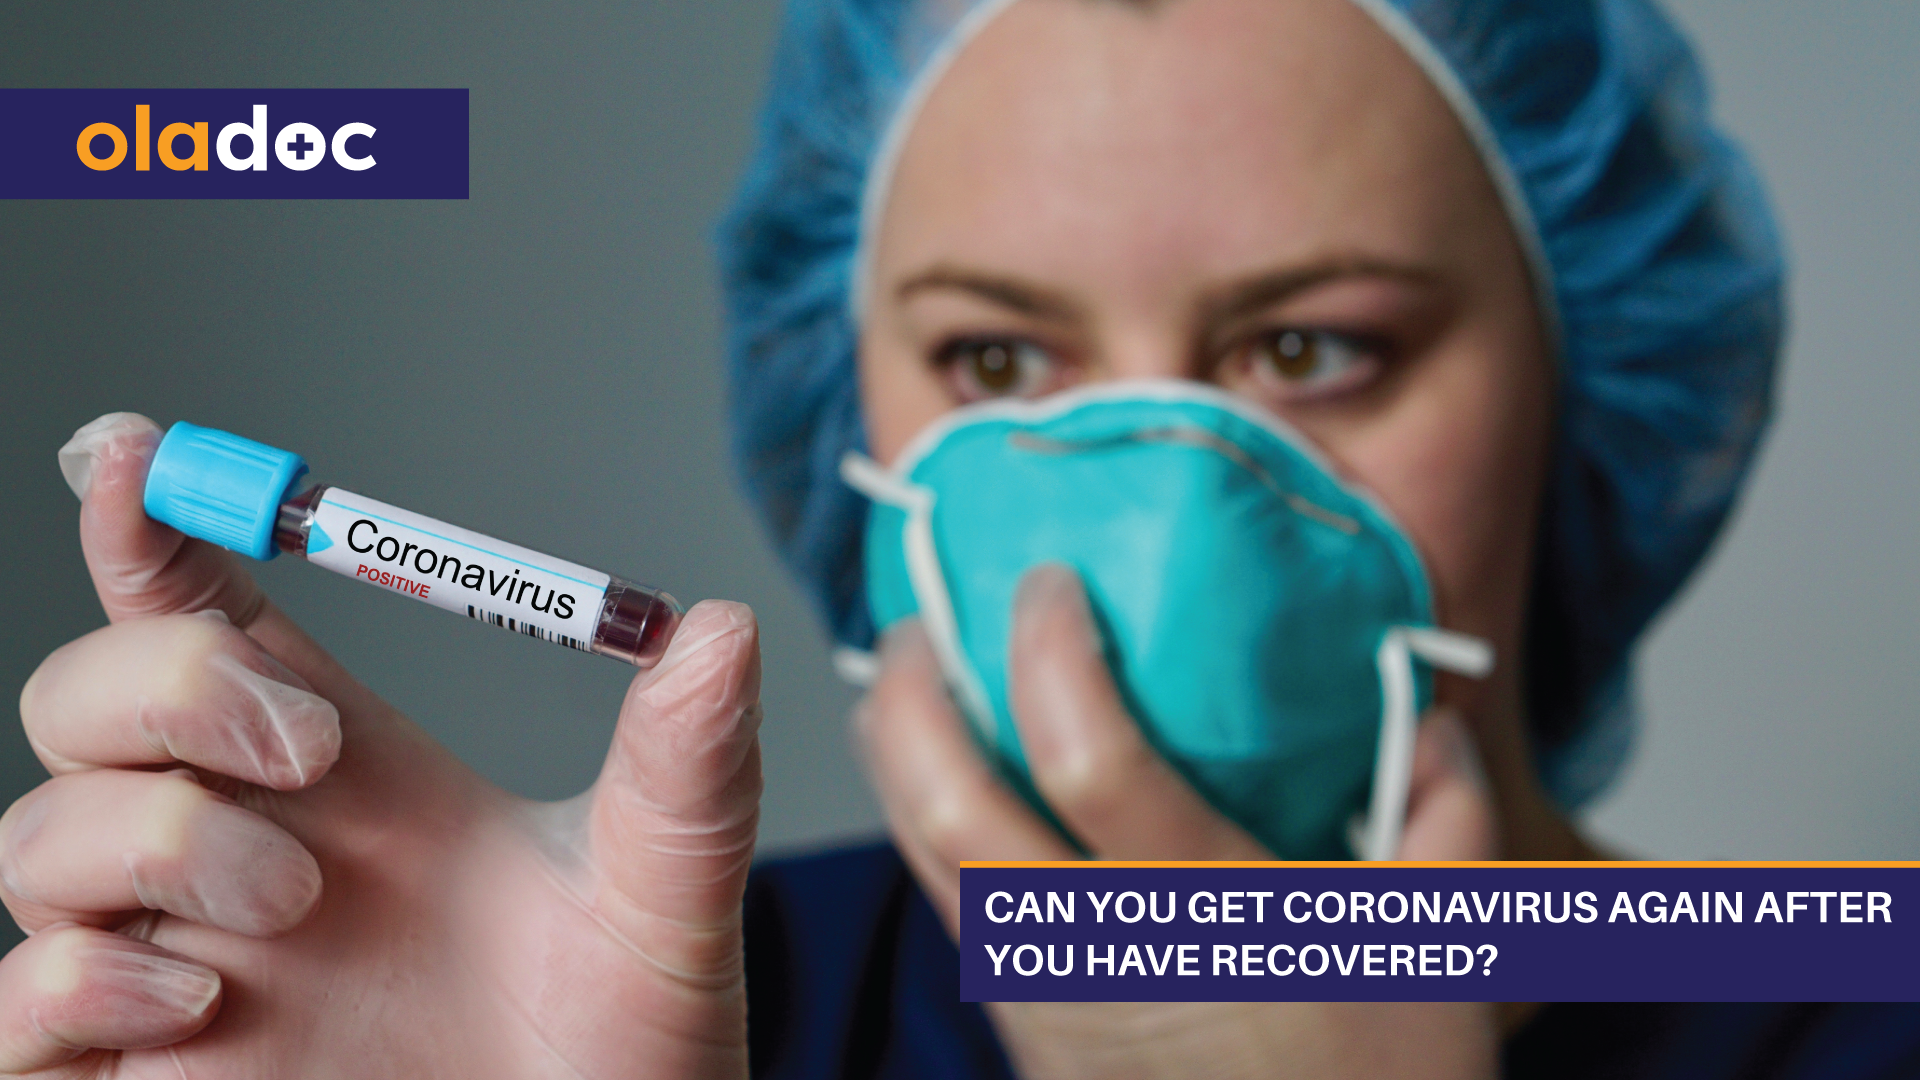 Can You Get Coronavirus Again After You Have Recovered?